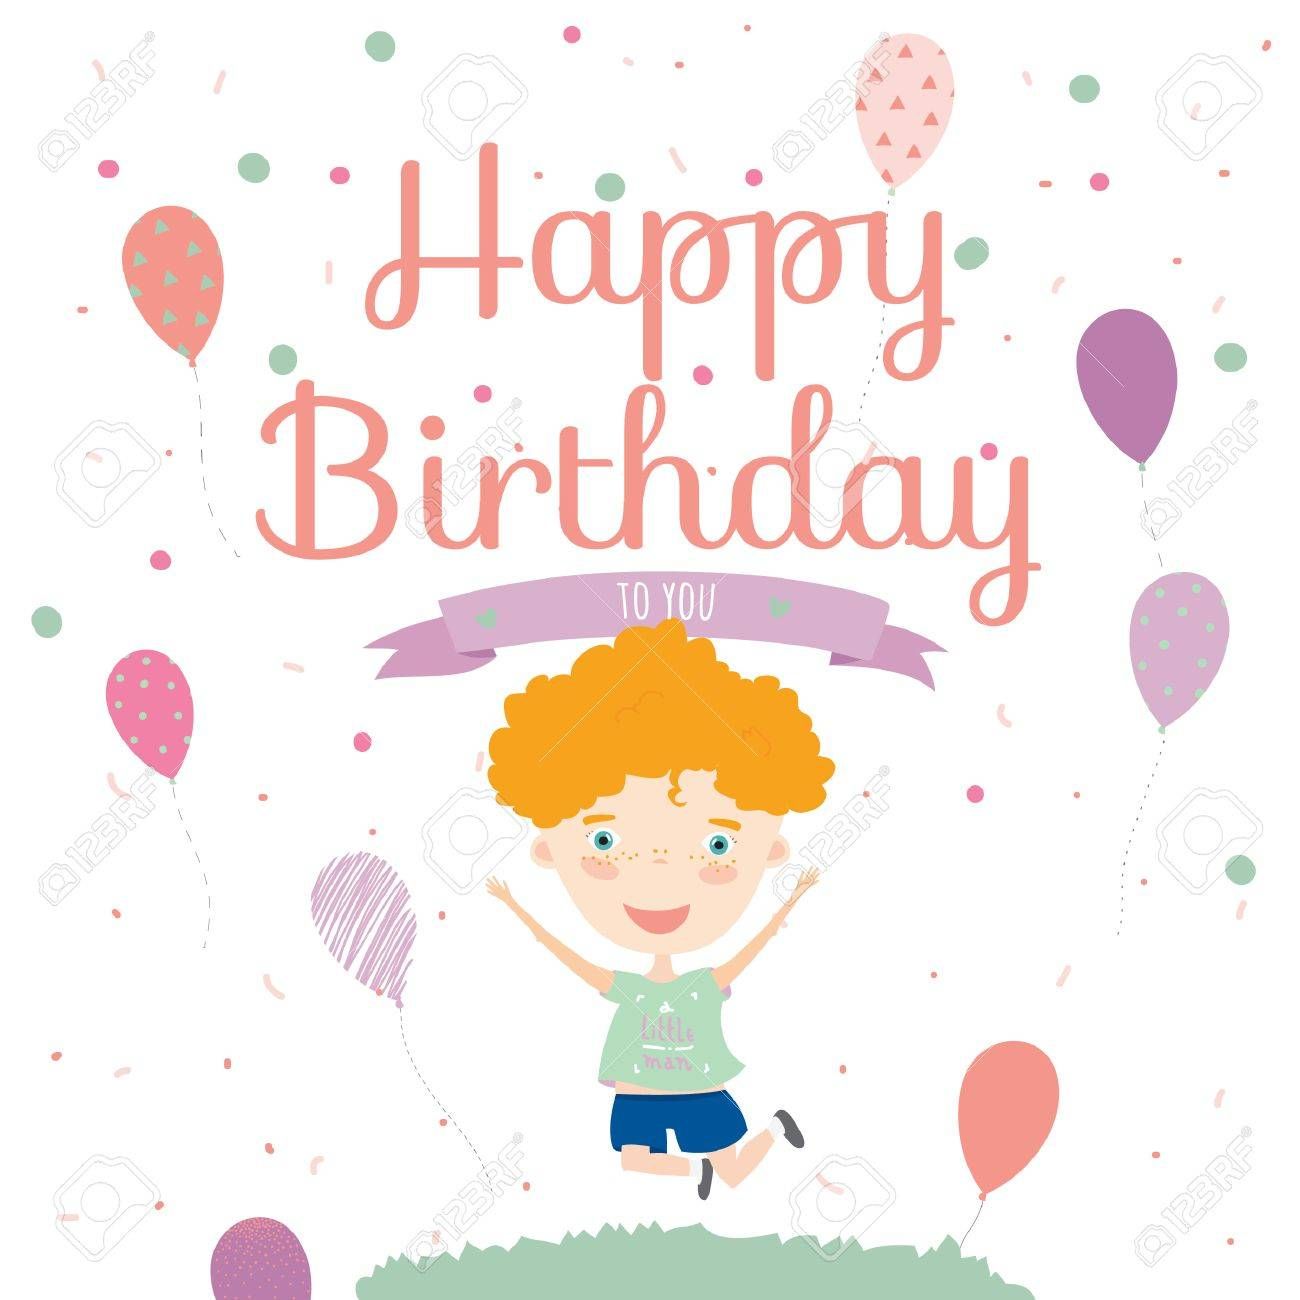 Birthday card with cute jumping boy and birthday party invitation birthday card with cute jumping boy and birthday party invitation card template in cartoon and cute stopboris Gallery